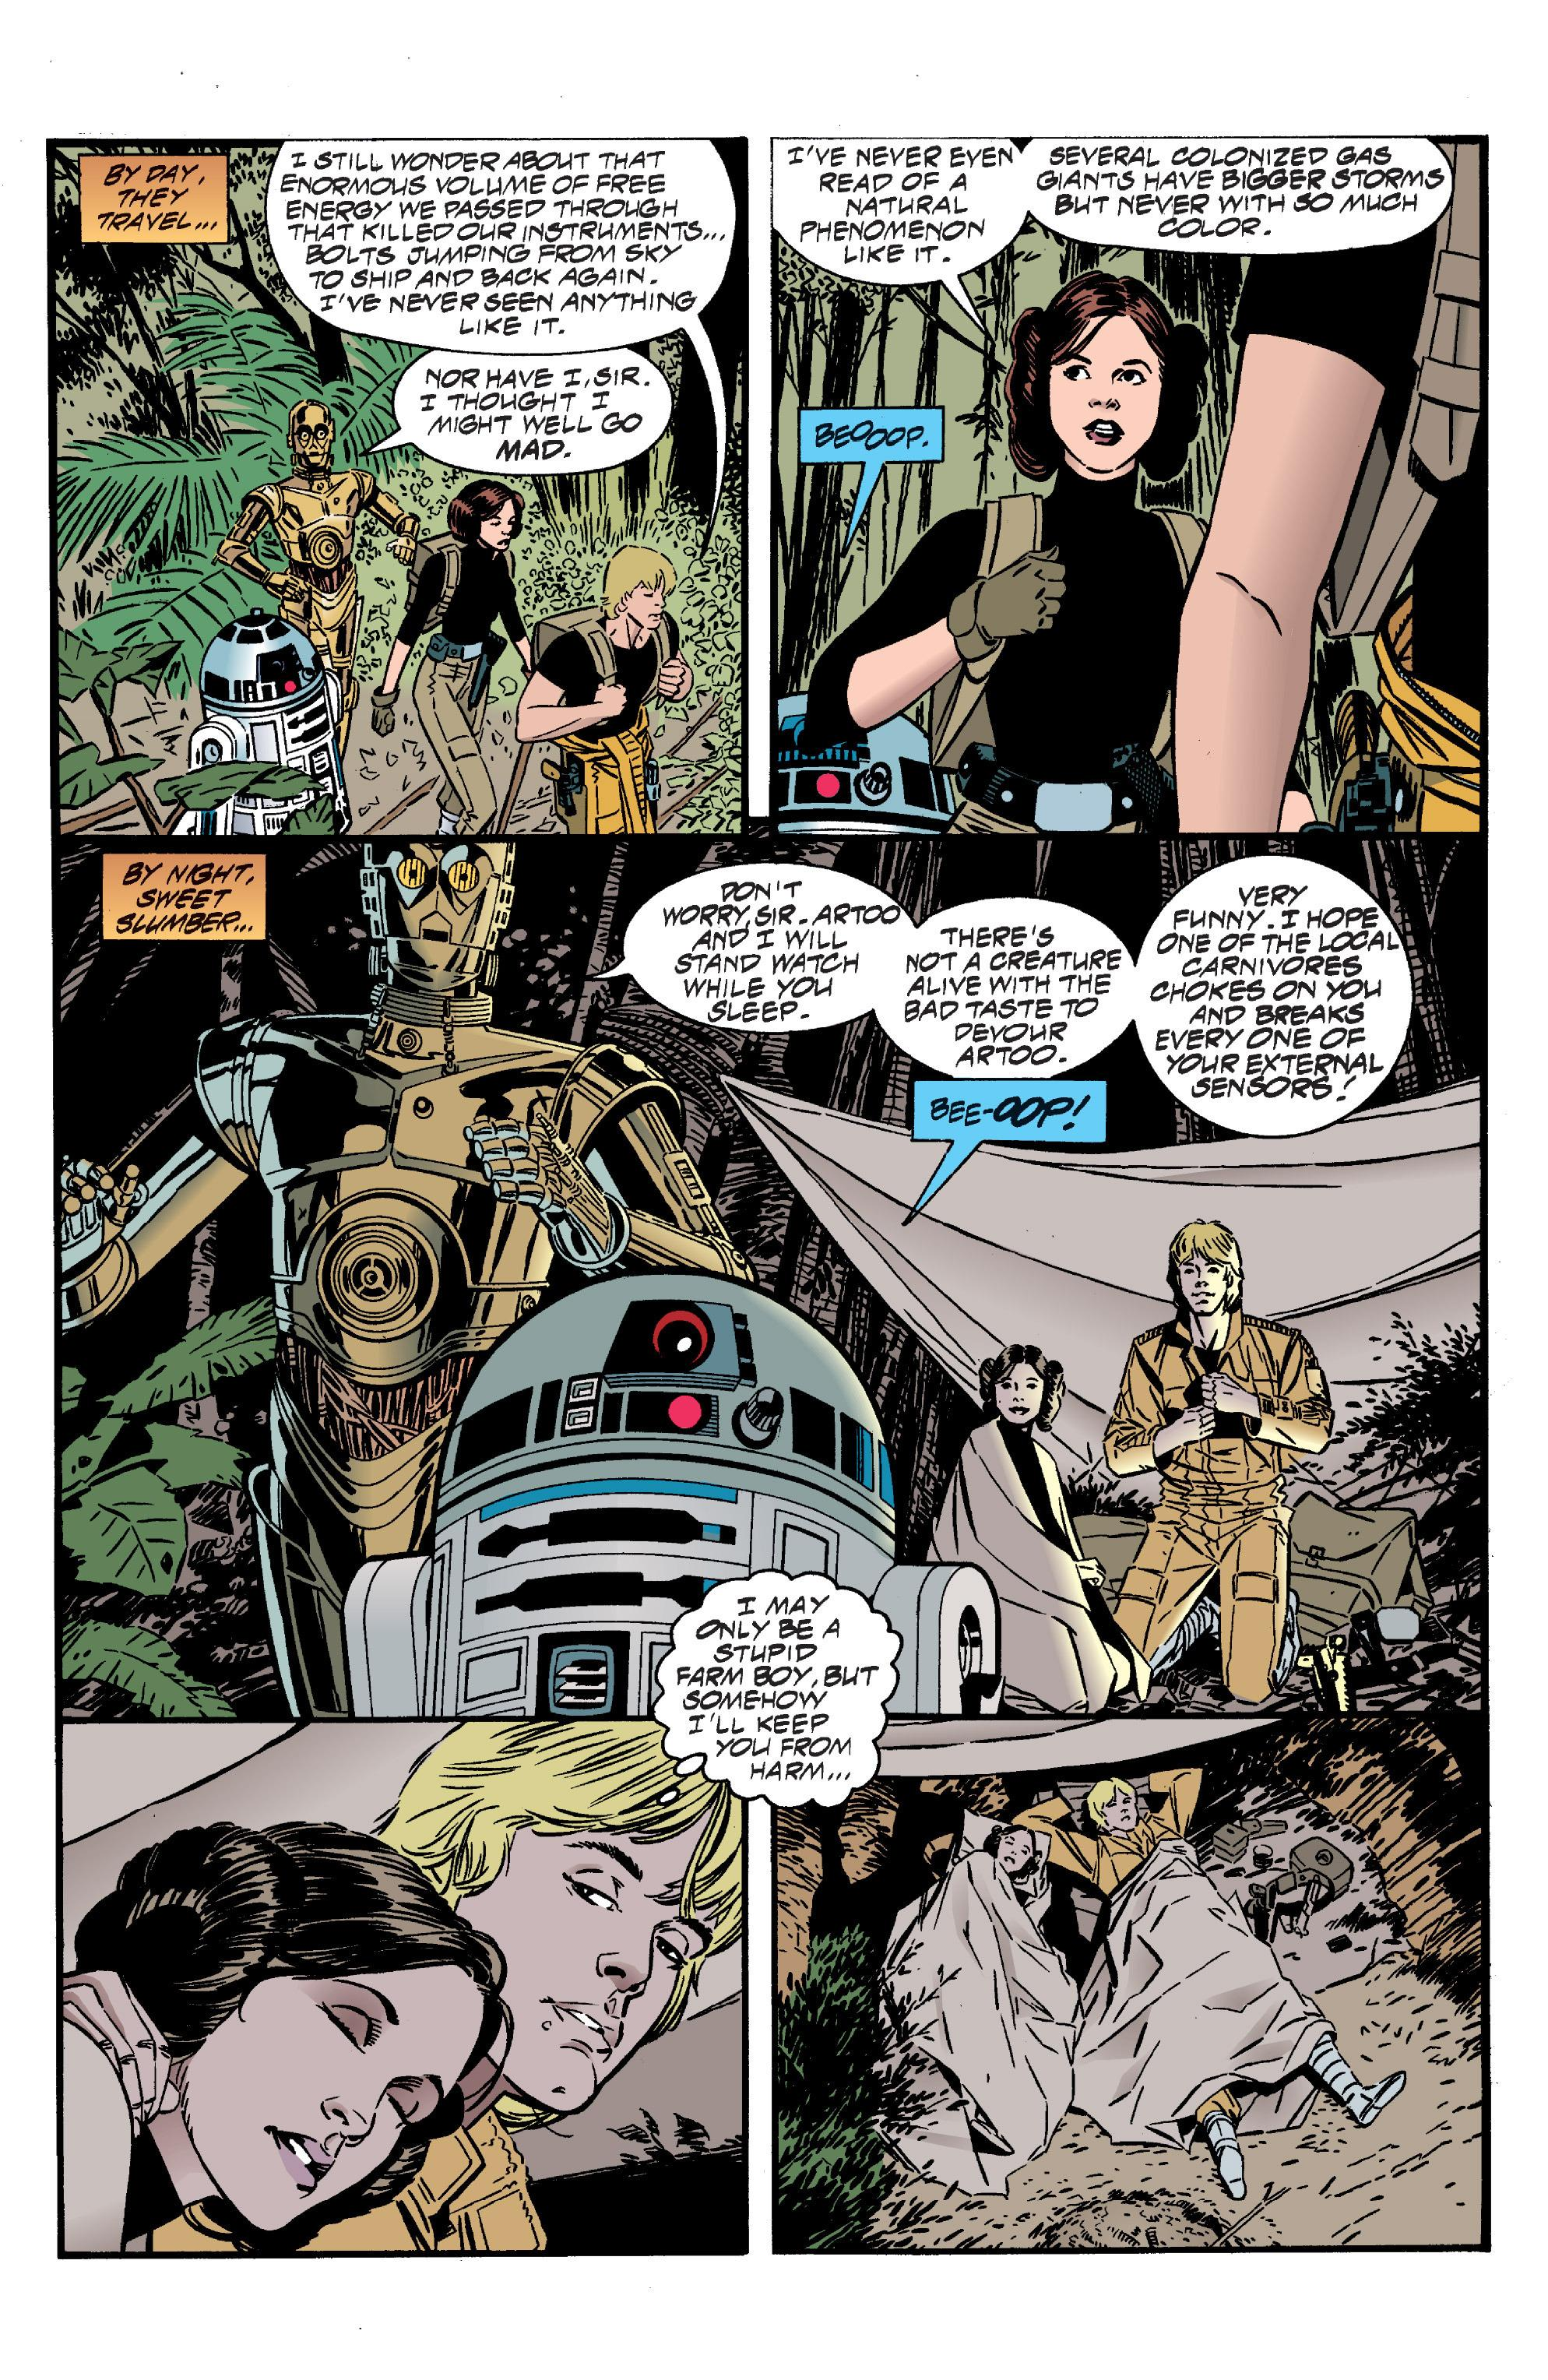 Star Wars Splinter of the Mind's Eye graphic novel review